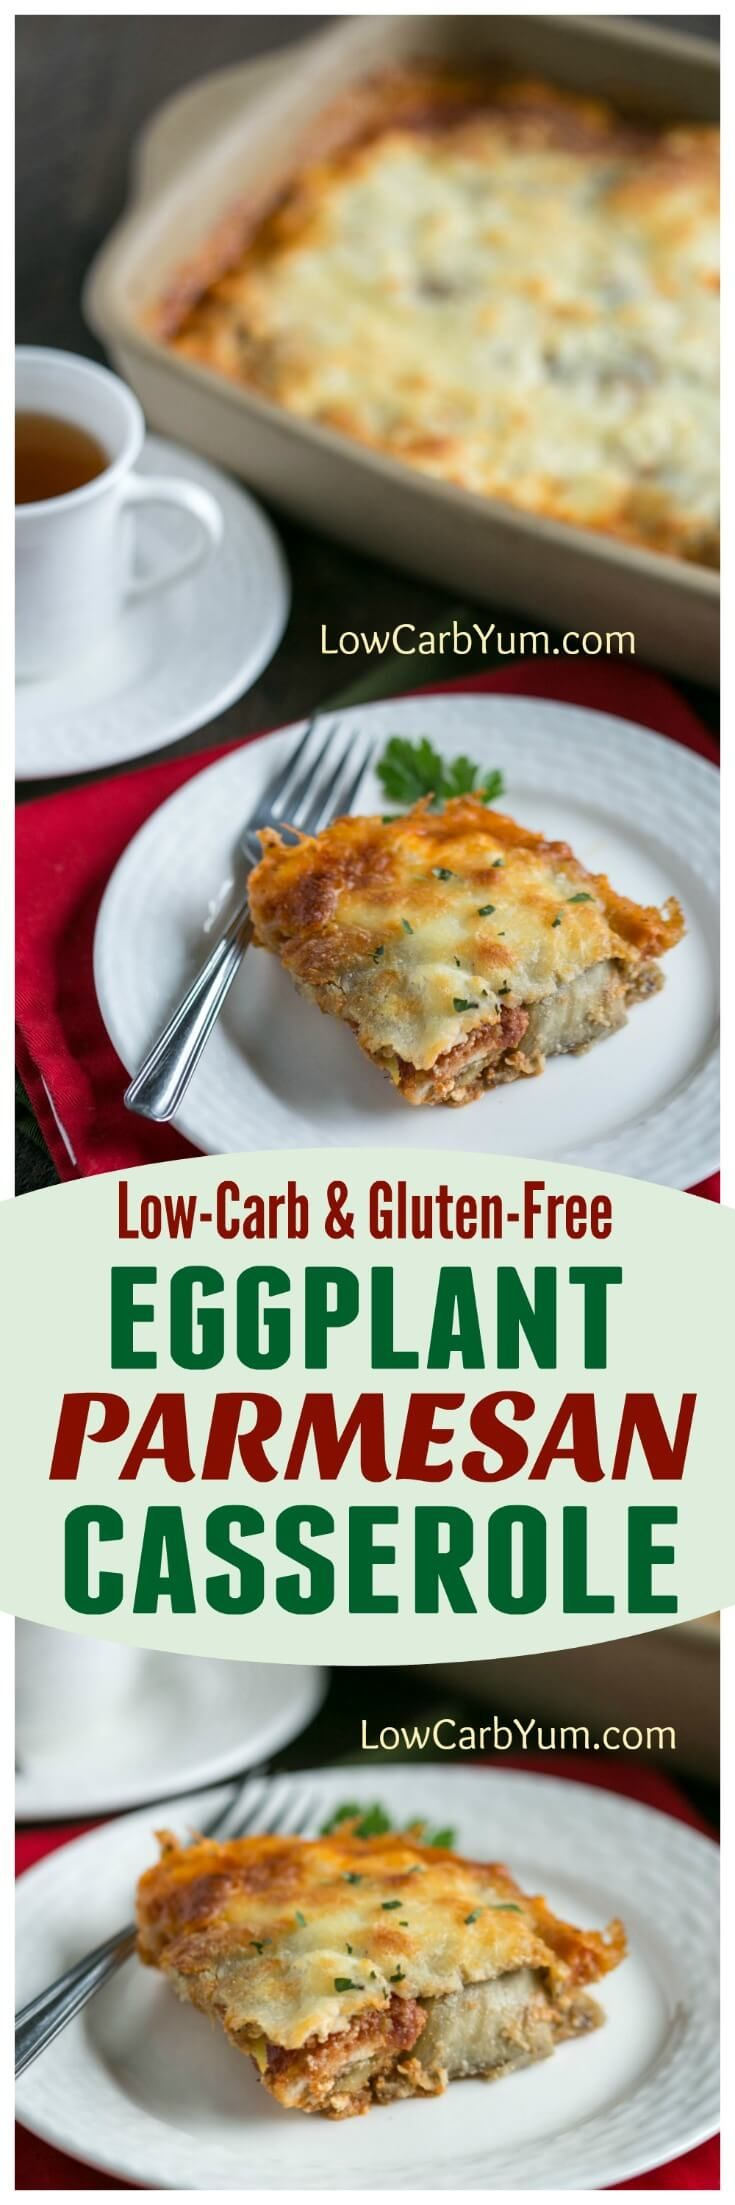 A delicious low carb eggplant Parmesan casserole made with a gluten free breading. It's loaded with cheese and full of authentic Italian flavor! | LowCarbYum.com